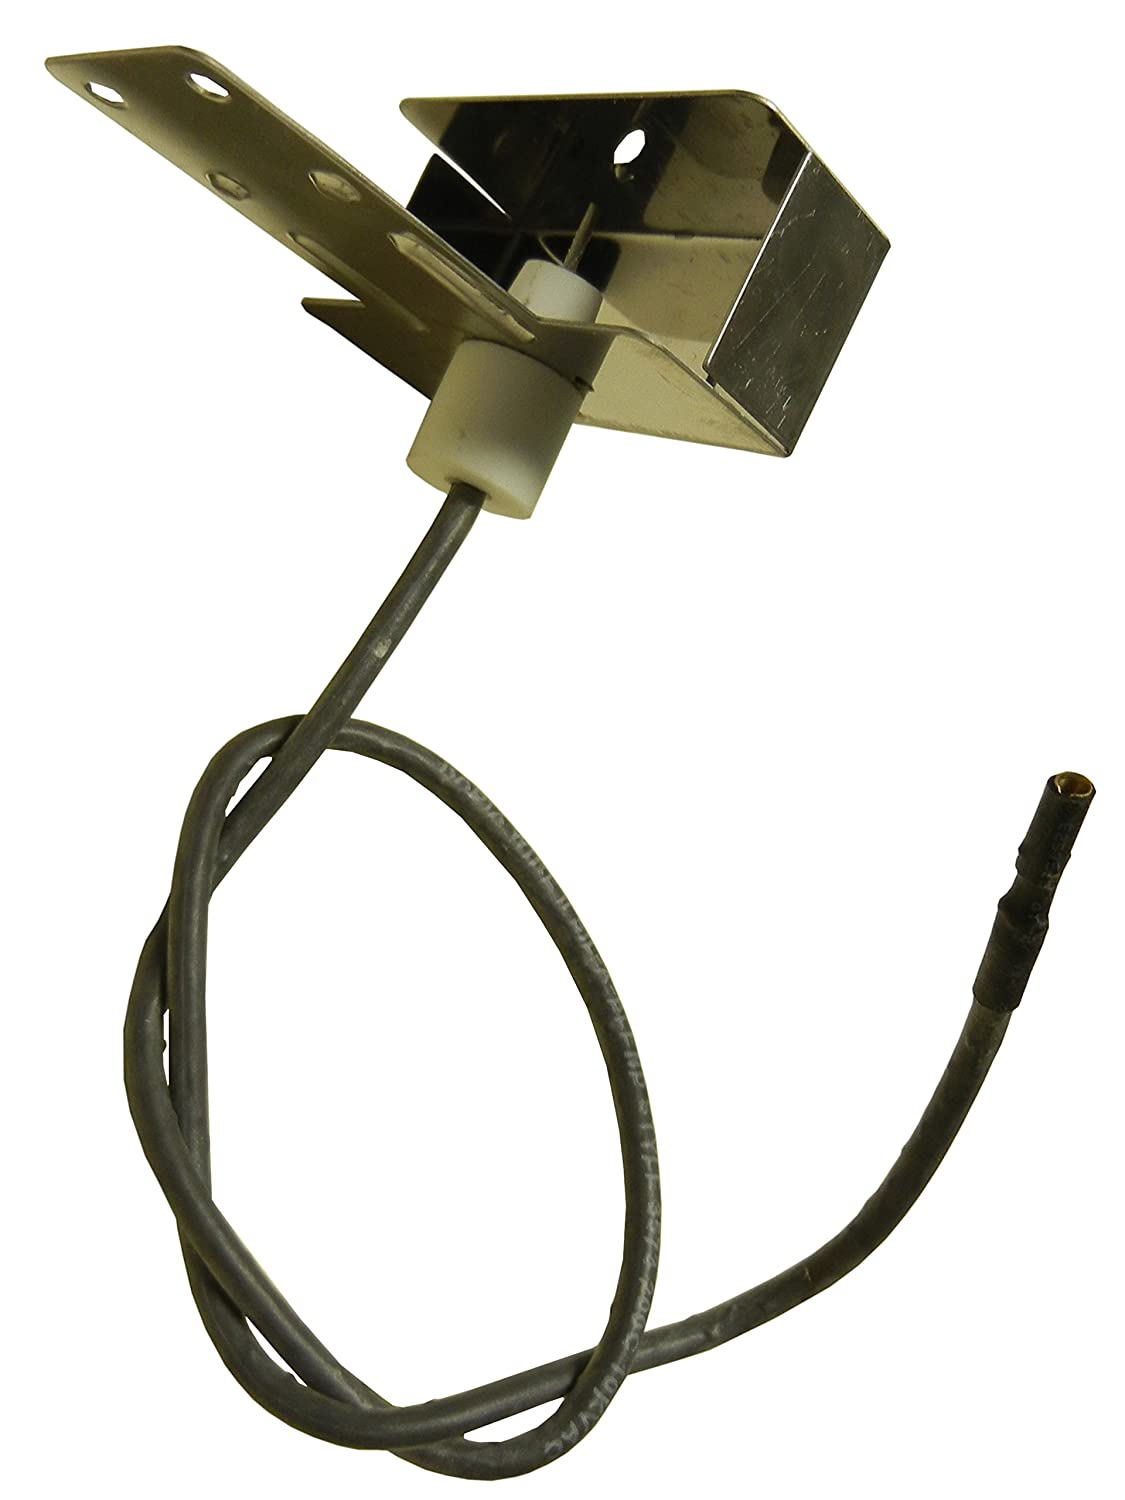 L F Z 6 Outlet 14461 Universal Spark Generator Push Button Igniter